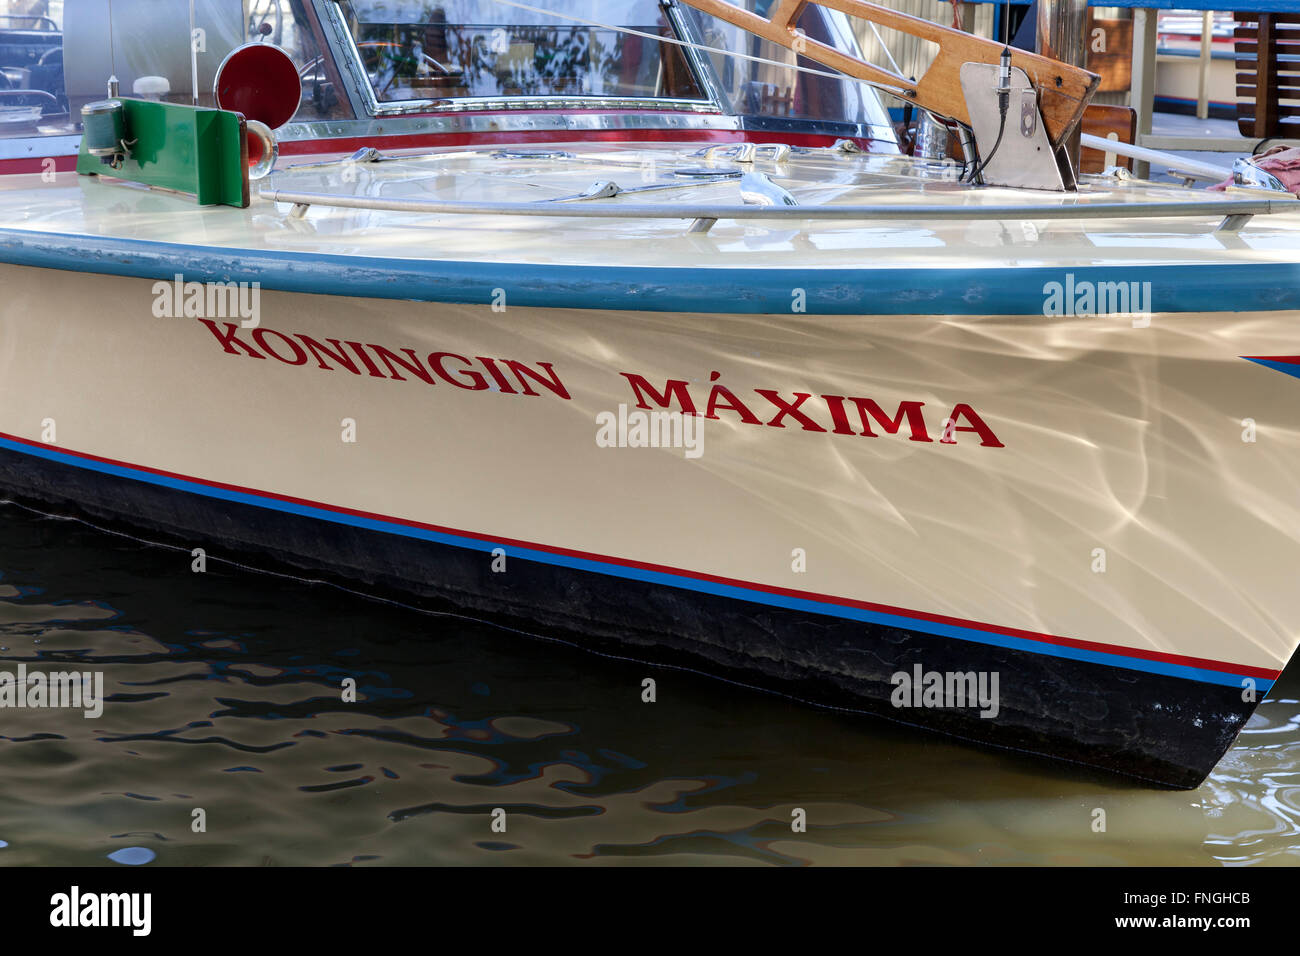 Launch in Amsterdam with the name of queen maxima - Stock Image